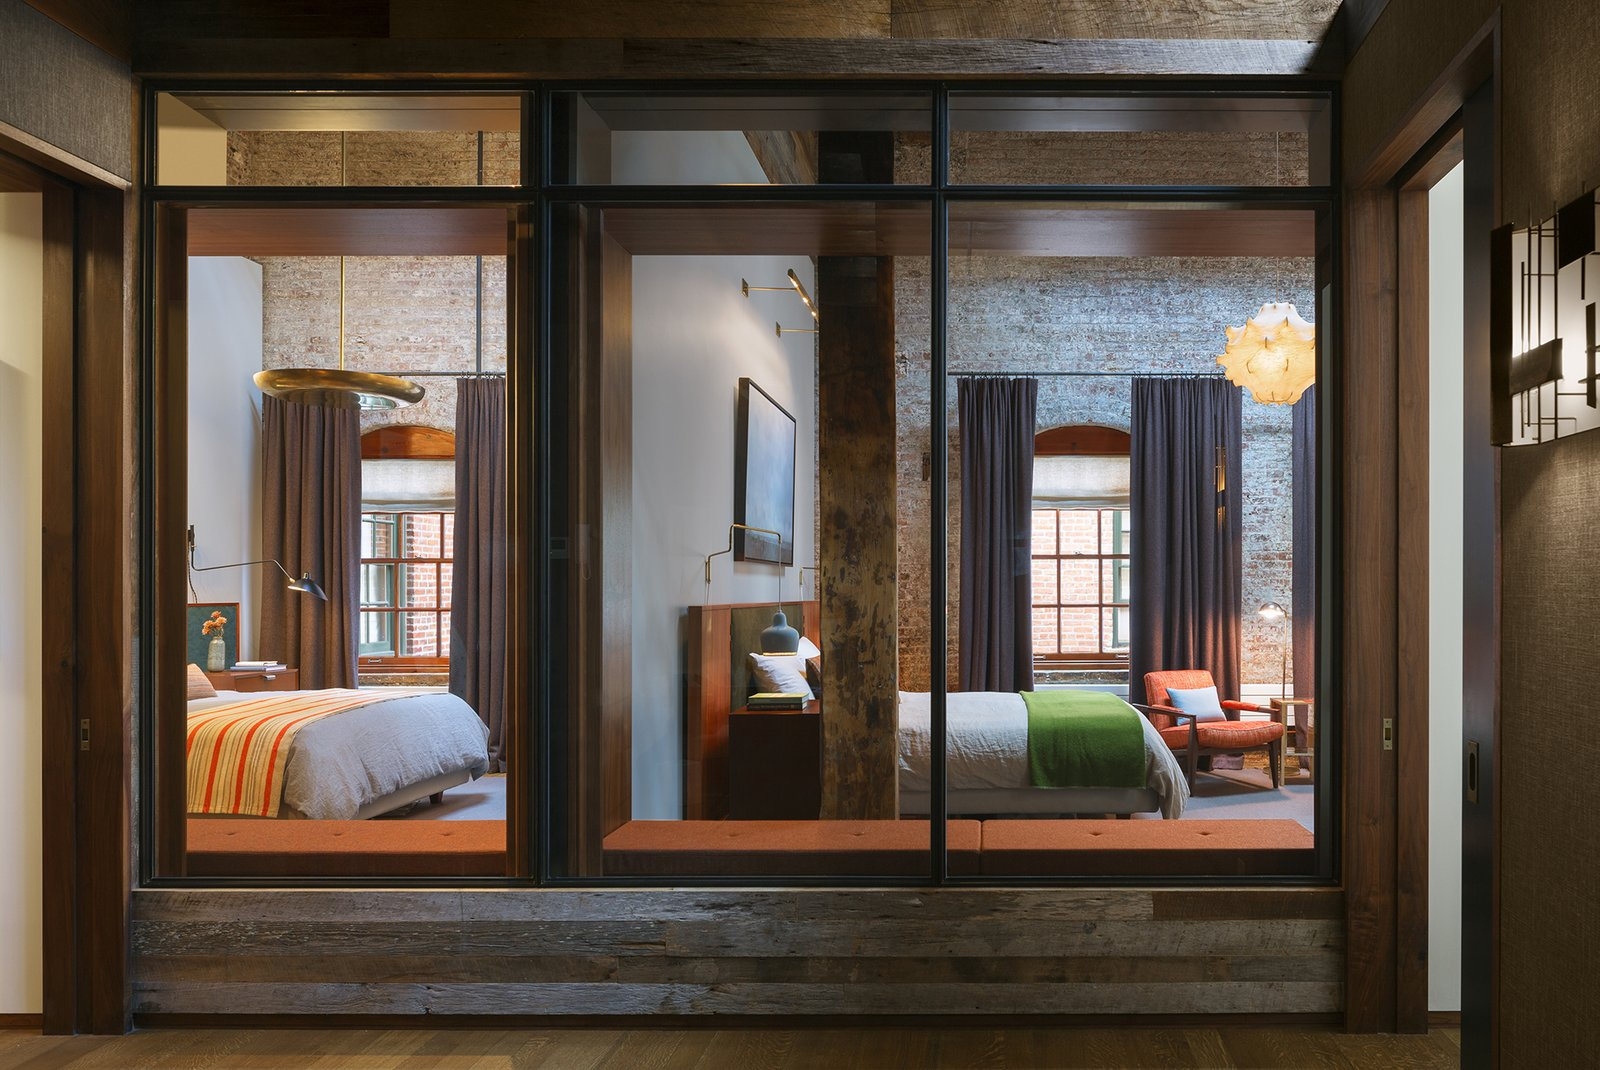 To bring light deep into the loft, the floor plan is open with glass partitions instead of solid walls at the north end of the loft.  Tribeca Loft by Andrew Franz Architect PLLC